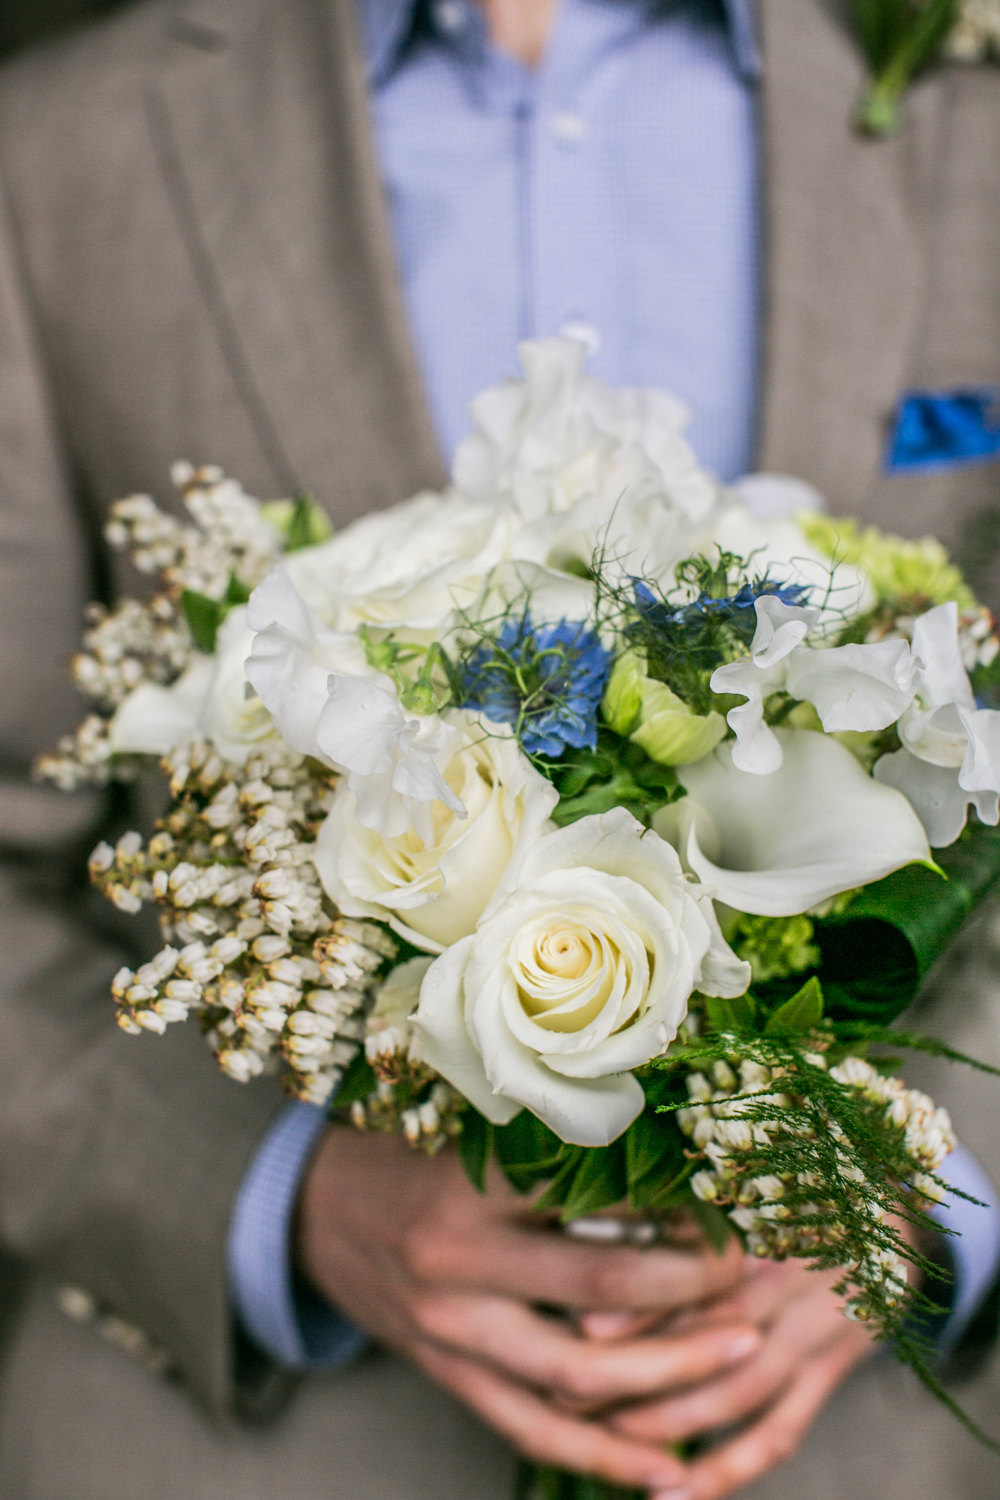 NYC Groom with Edelweiis bouquet